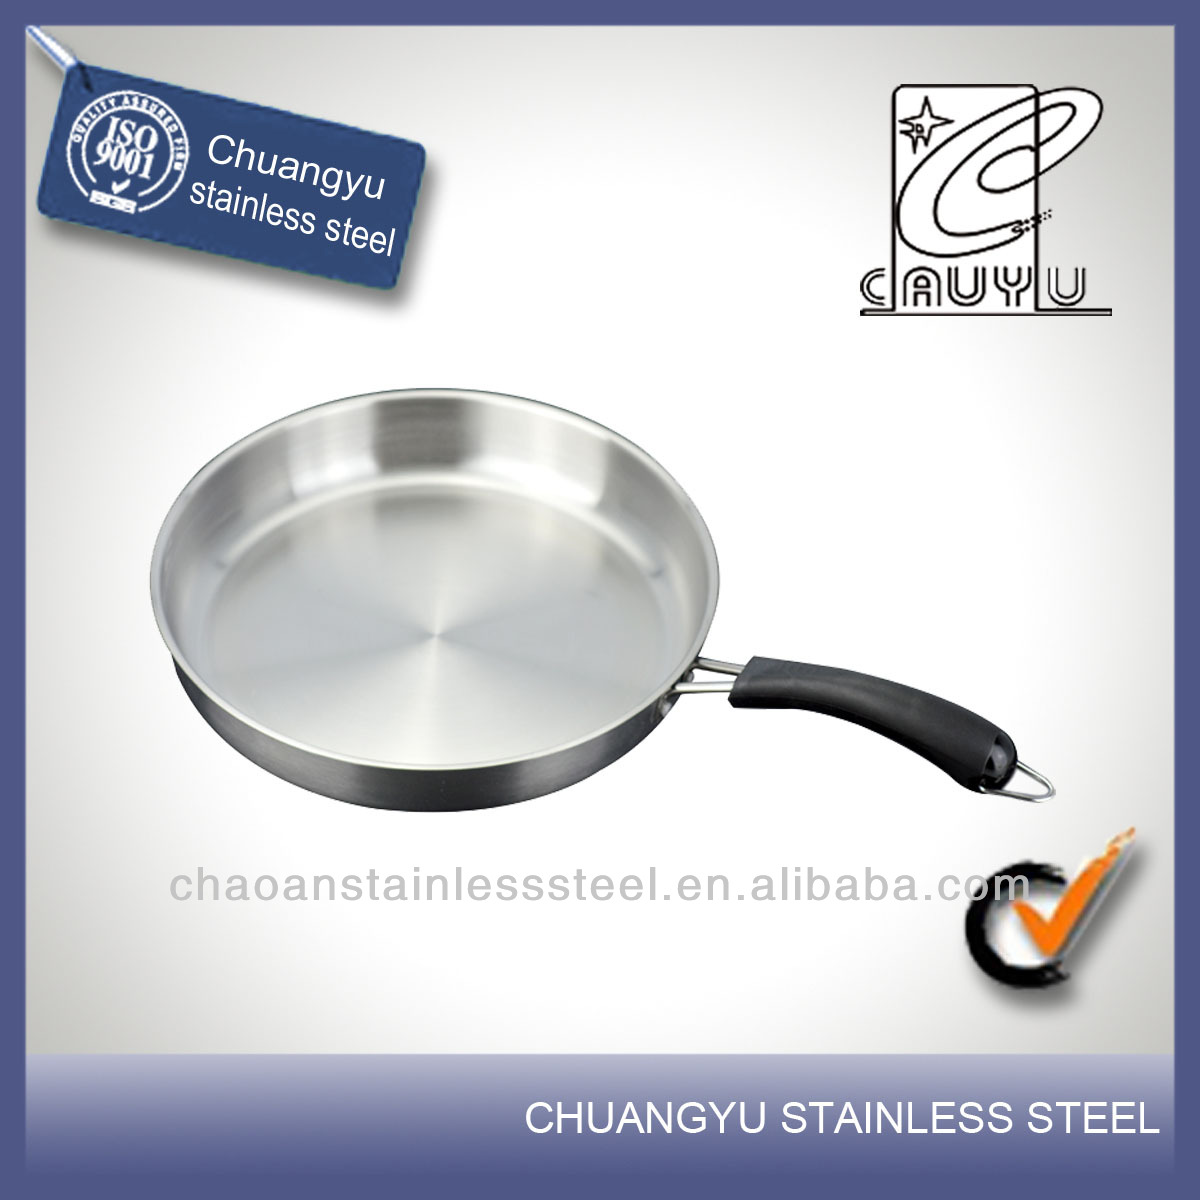 New product stainless steel peter costume pan